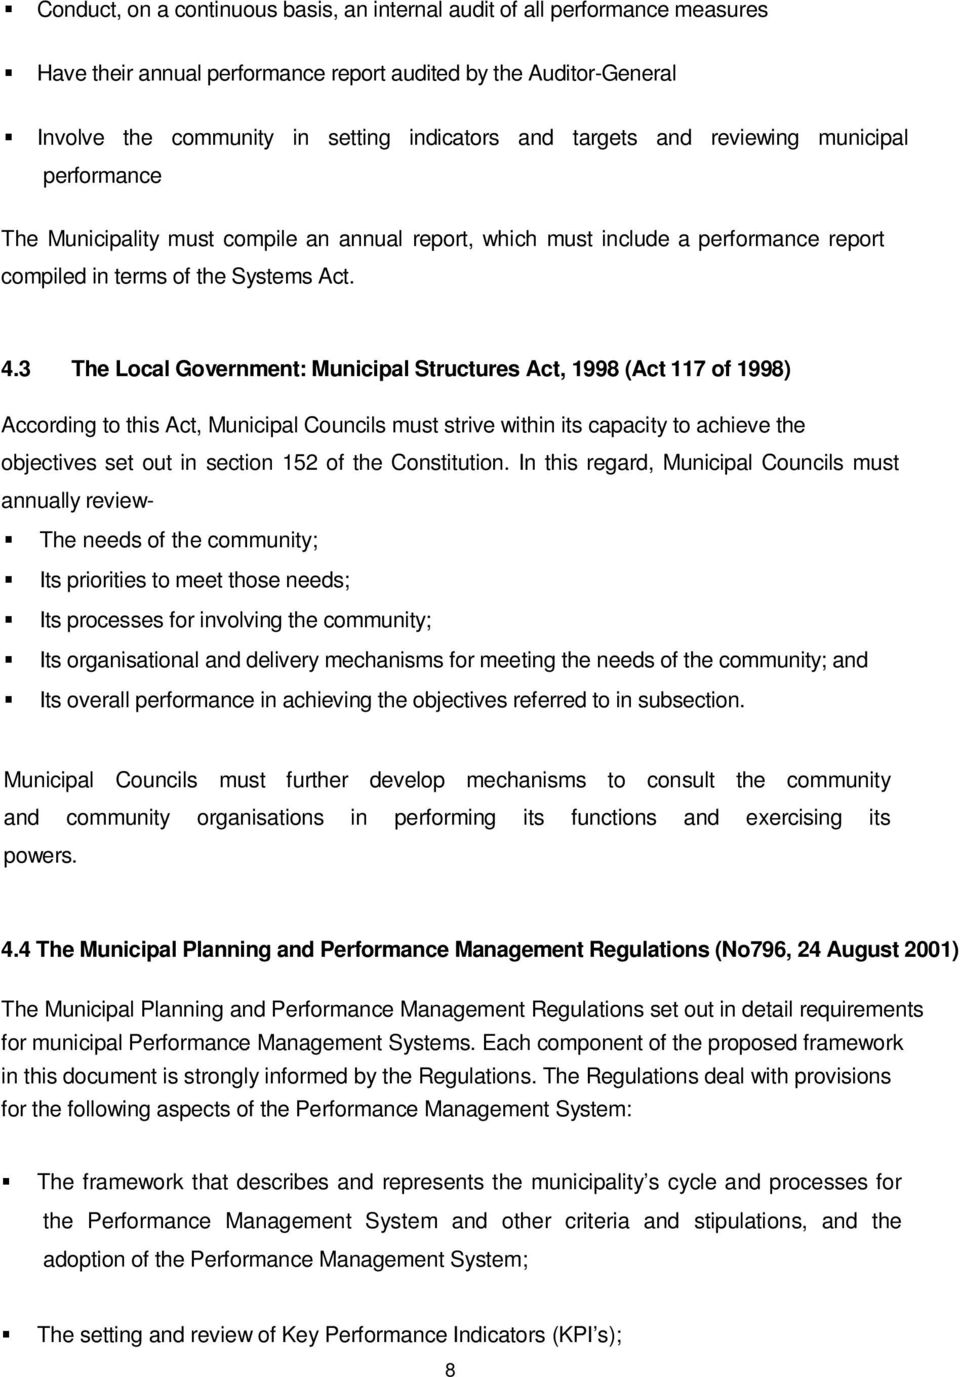 3 The Local Government: Municipal Structures Act, 1998 (Act 117 of 1998) According to this Act, Municipal Councils must strive within its capacity to achieve the objectives set out in section 152 of